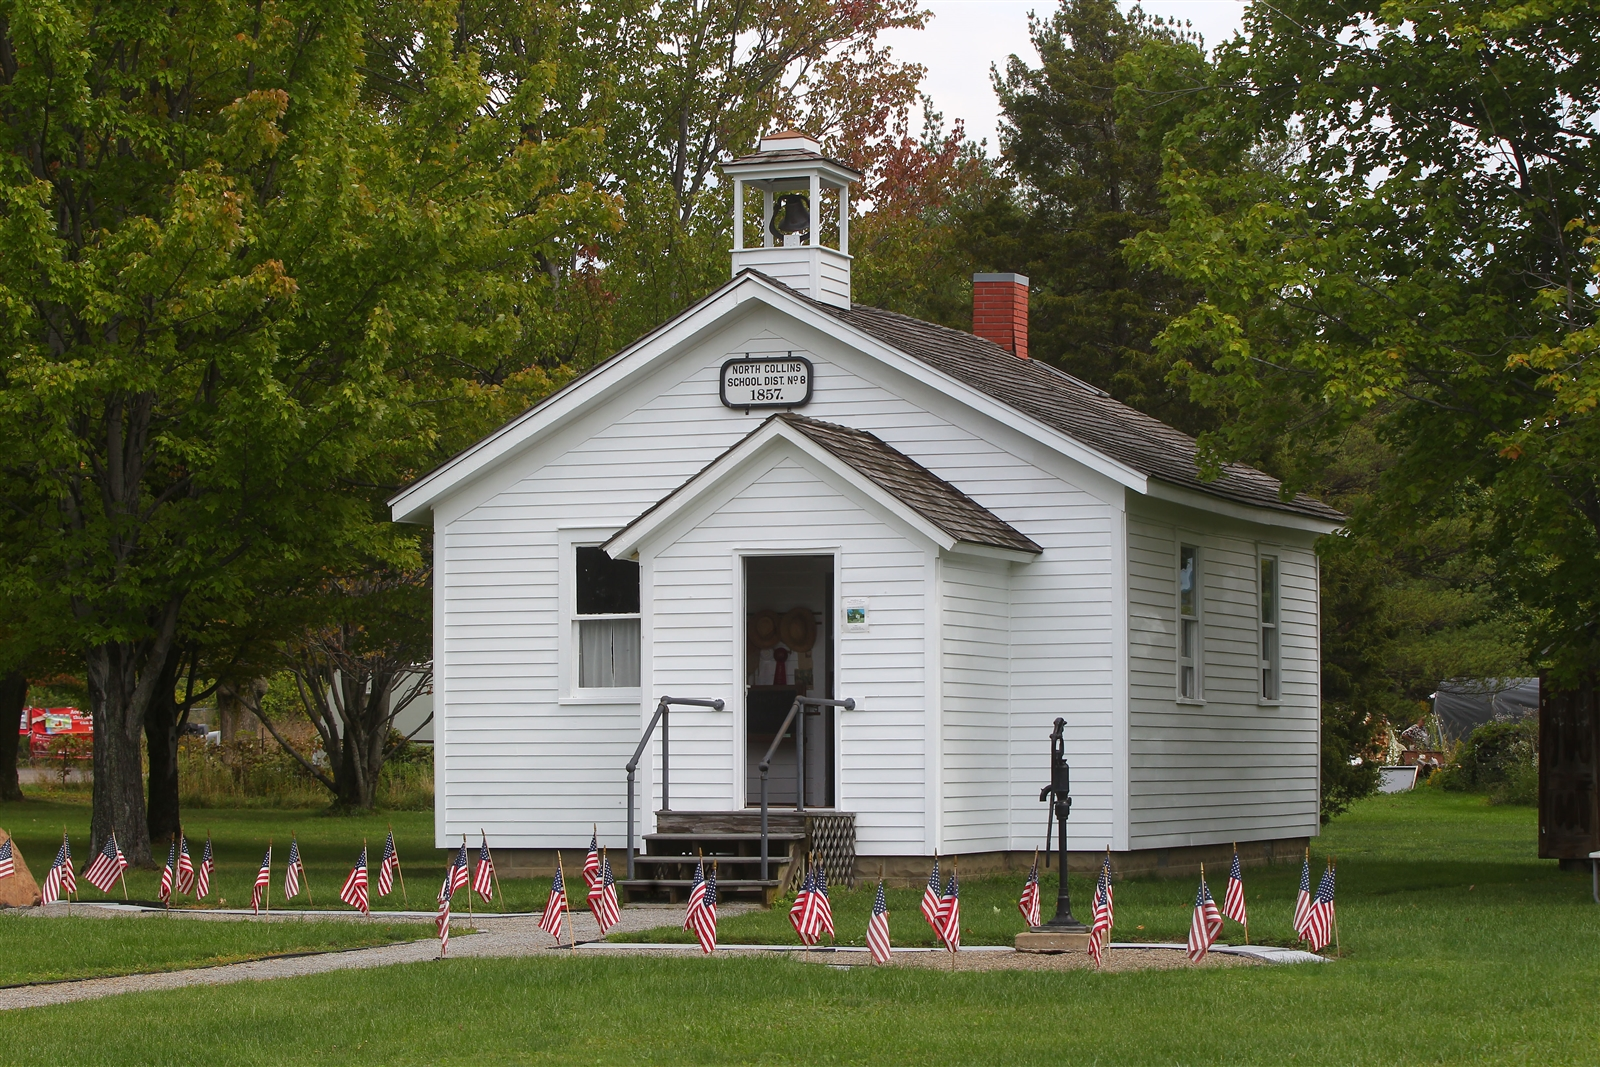 The Schoolhouse #8 History Center and Museum in North Collins. The one-room schoolhouse originally was opened in 1857.